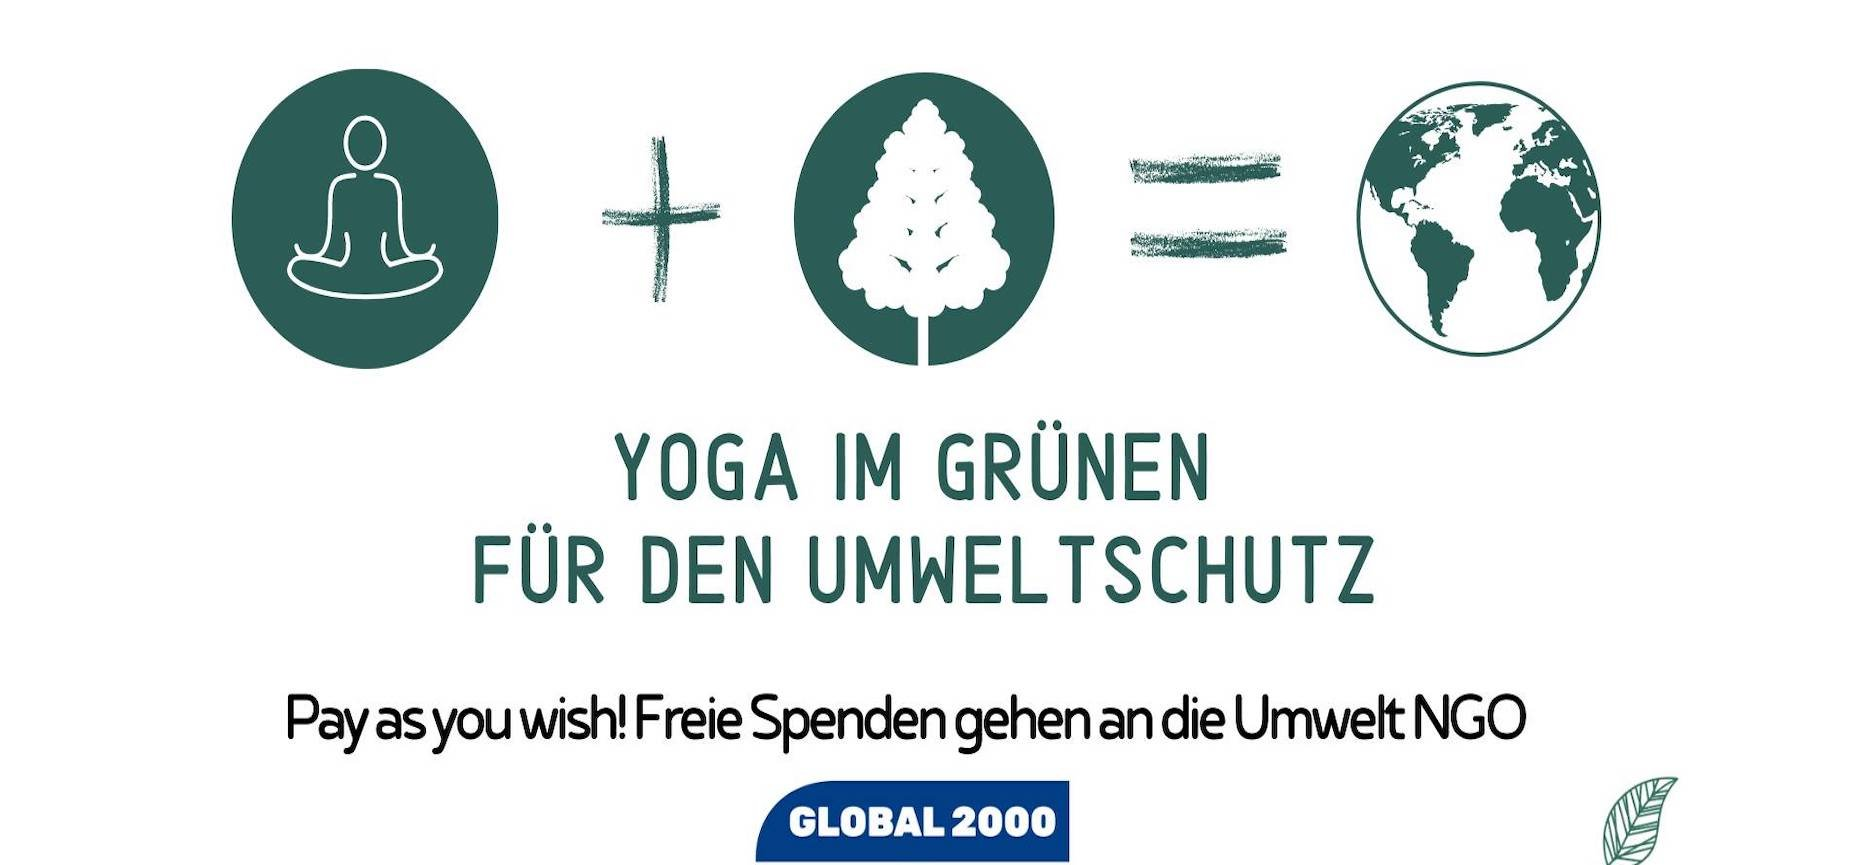 Yoga for the Enviroment